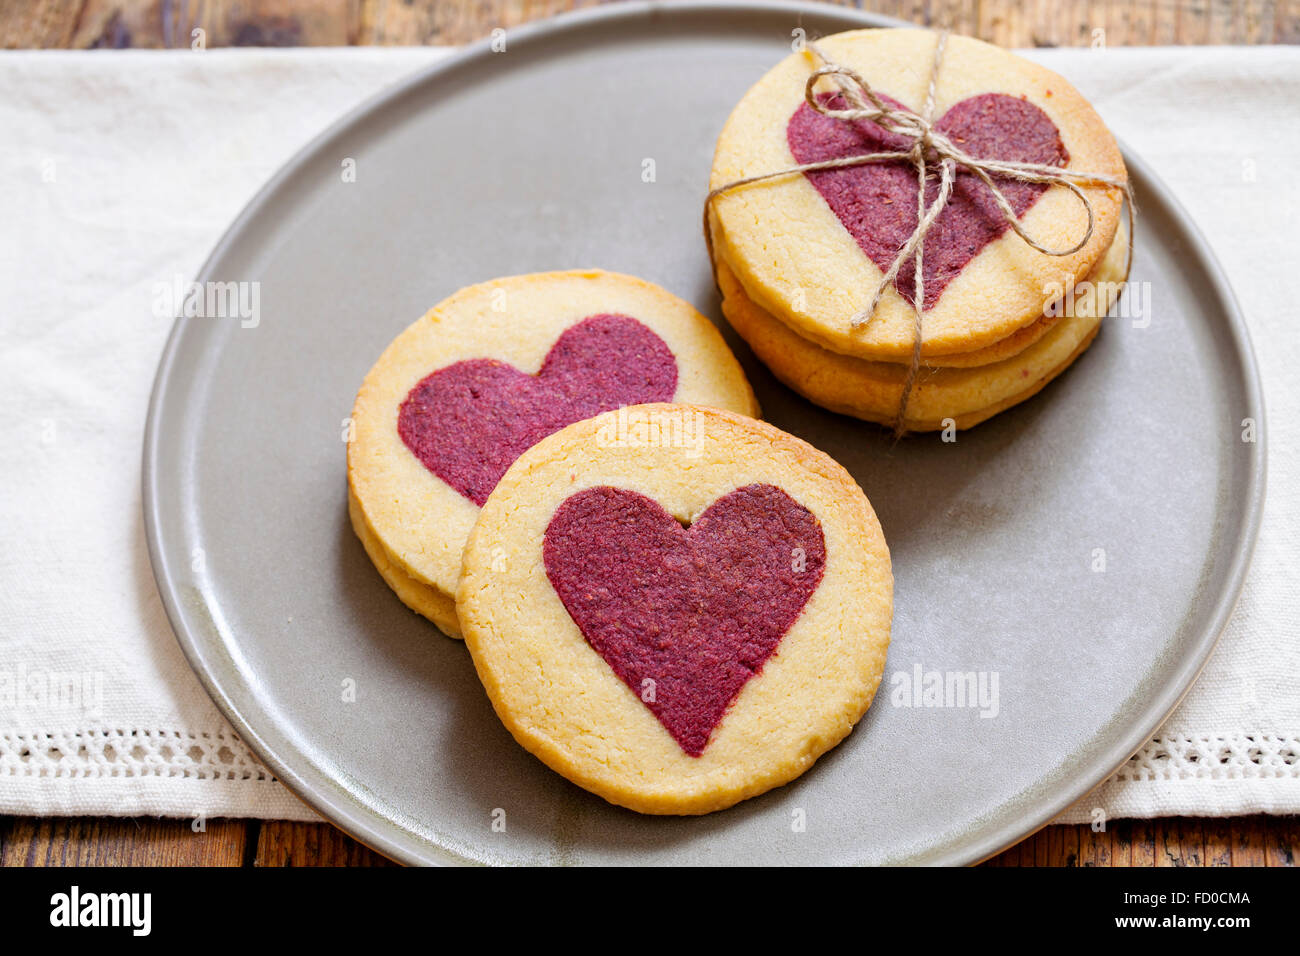 Valentine biscuits with raspberry hearts - Stock Image